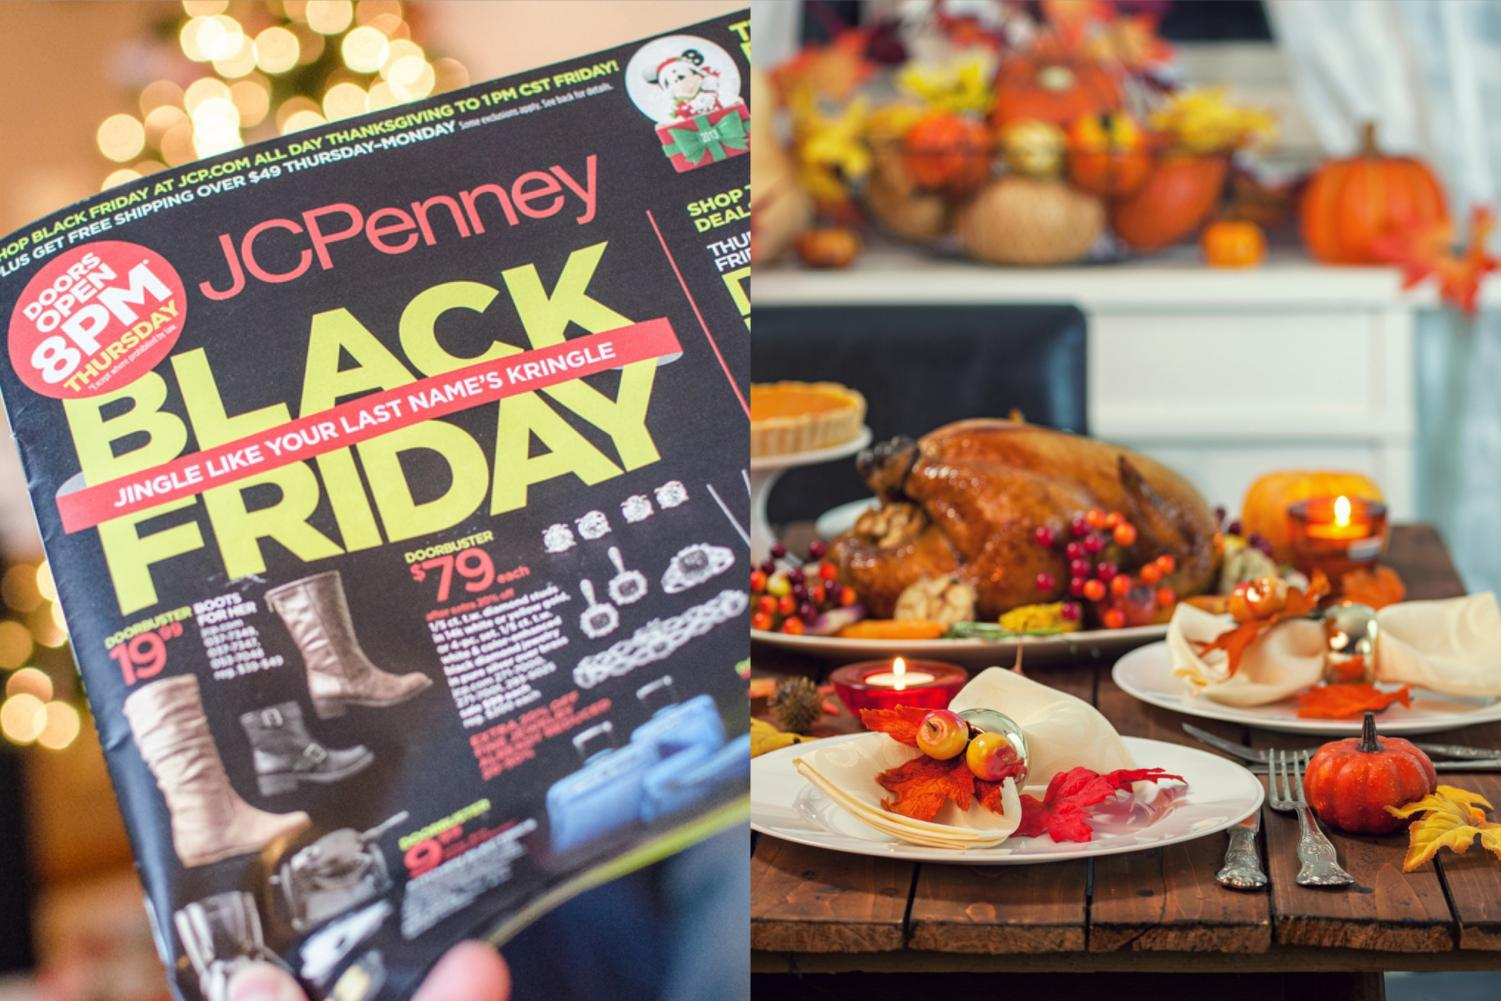 Millions of Americans across the country will be faced with the dilemma of either choosing Thanksgiving or Black Friday.